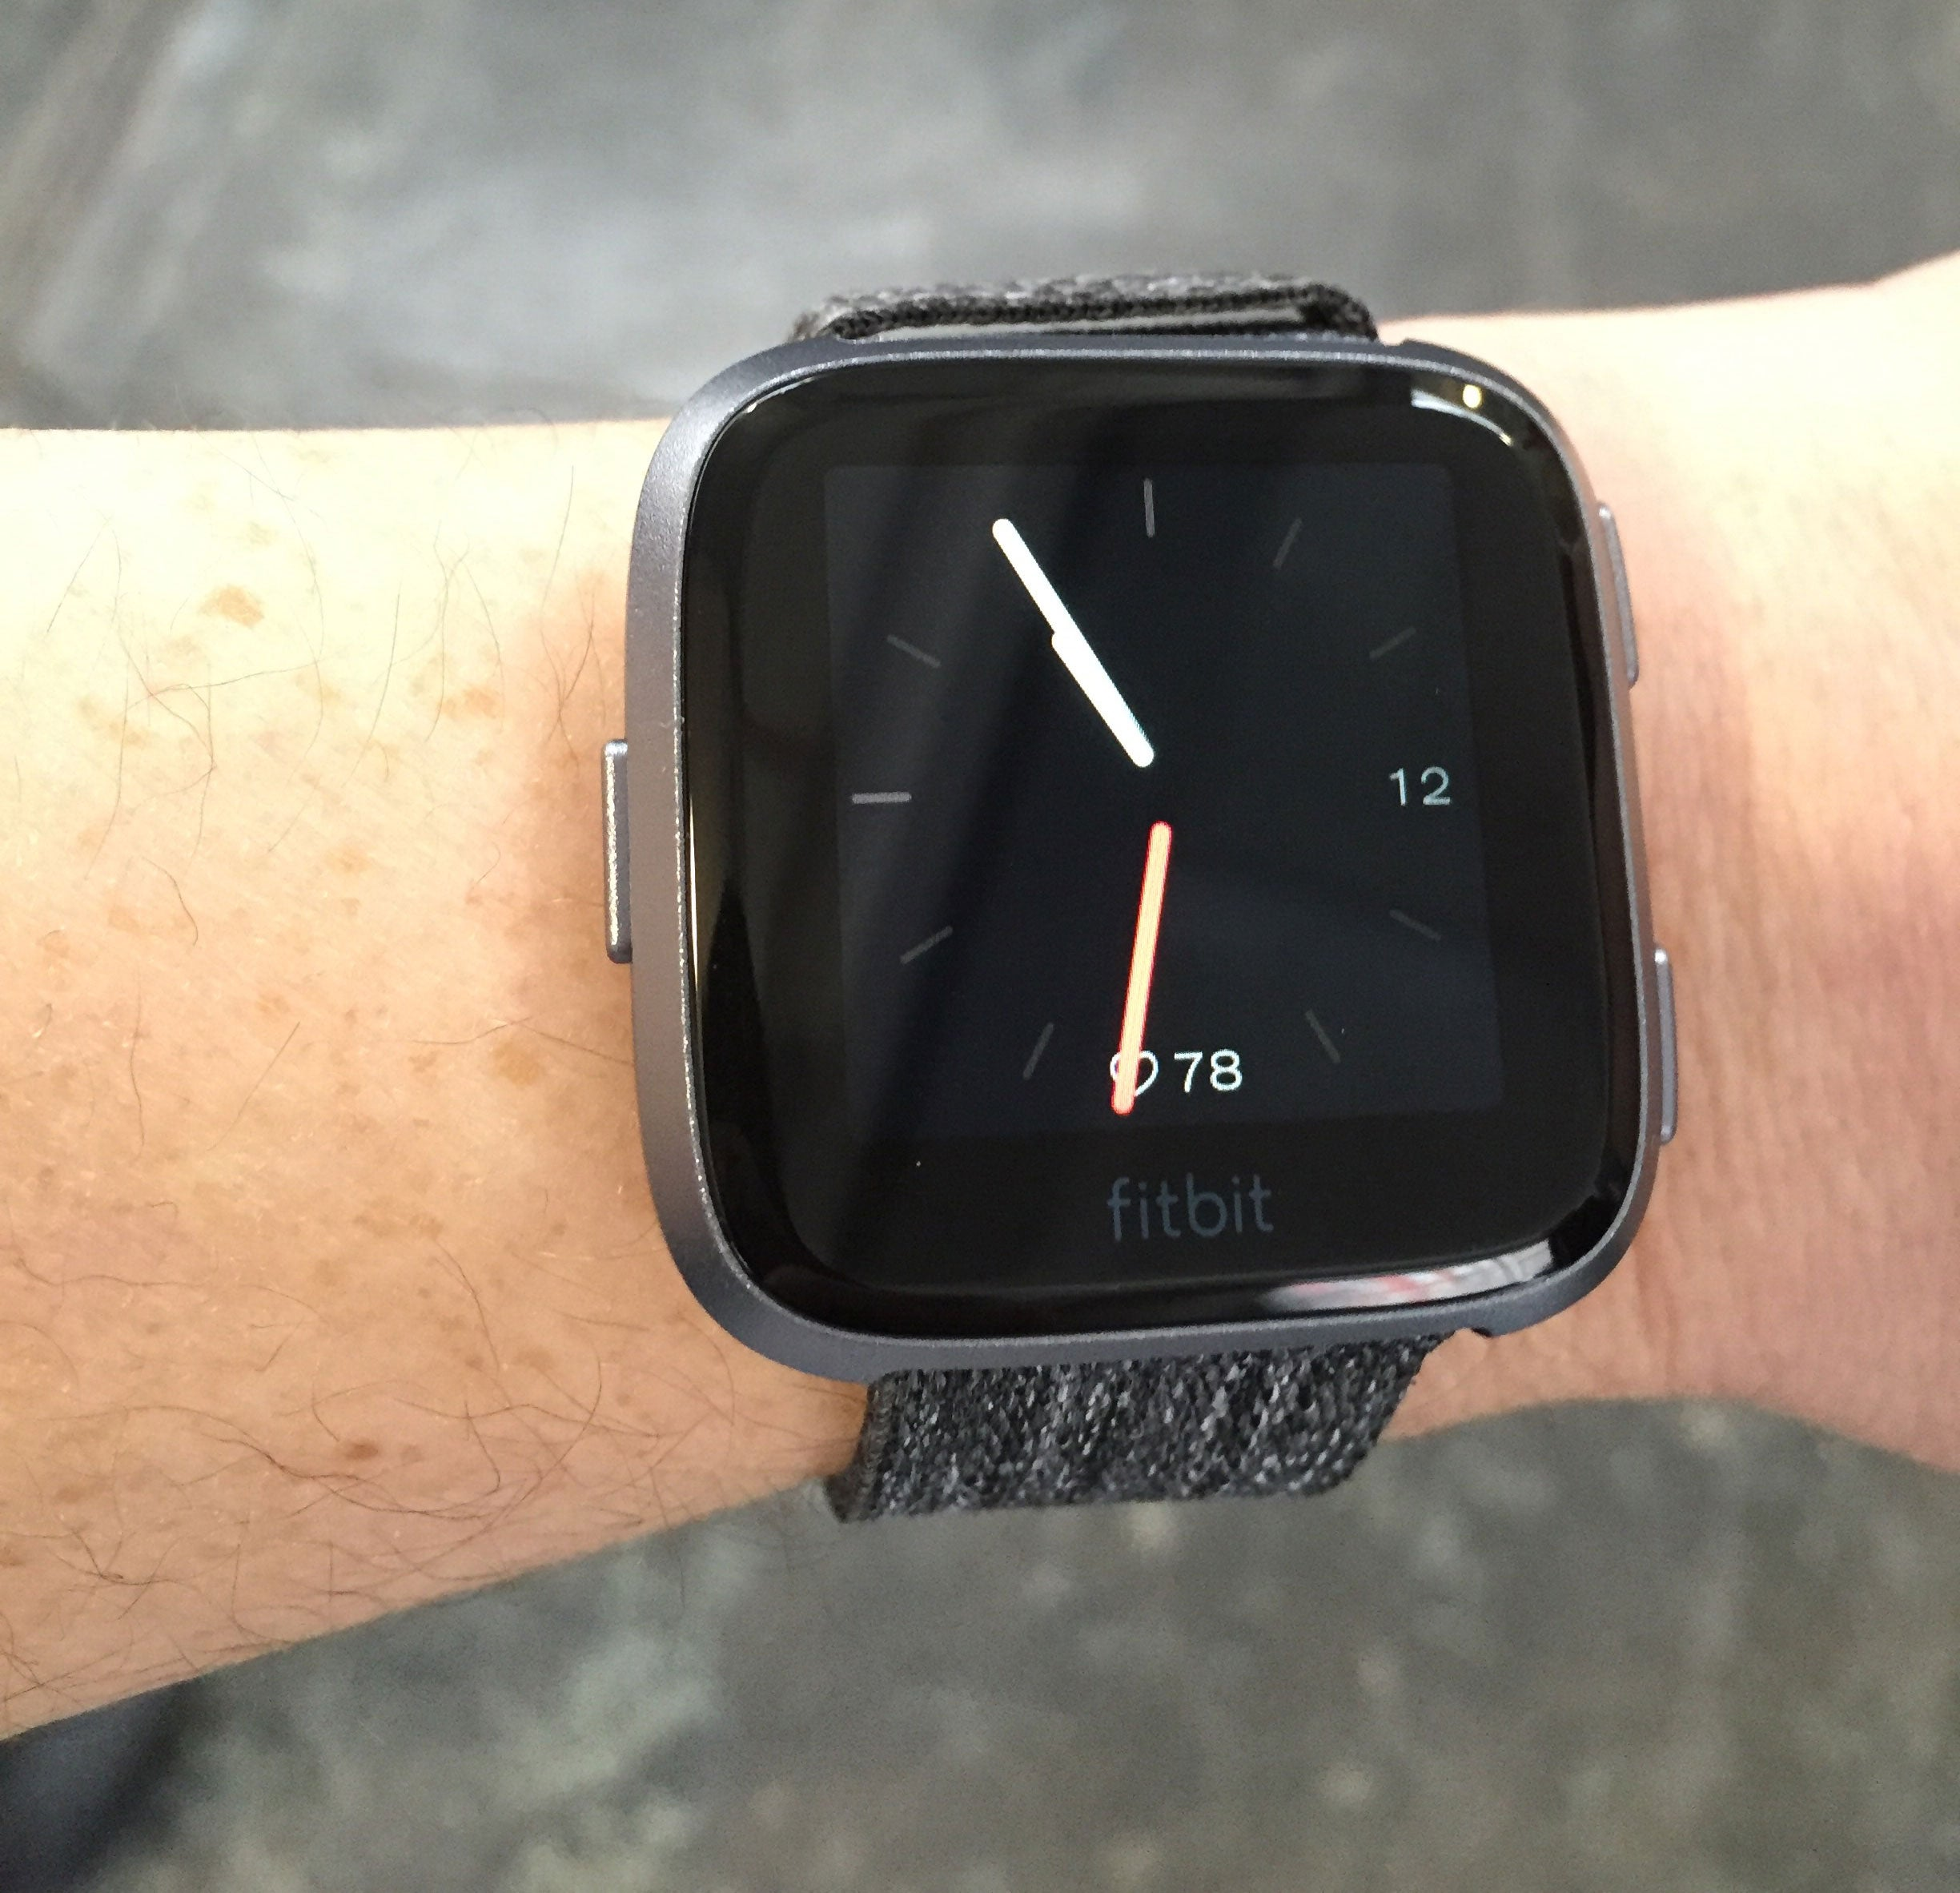 The Fitbit Versa is a $200 smart watch that does more than count steps